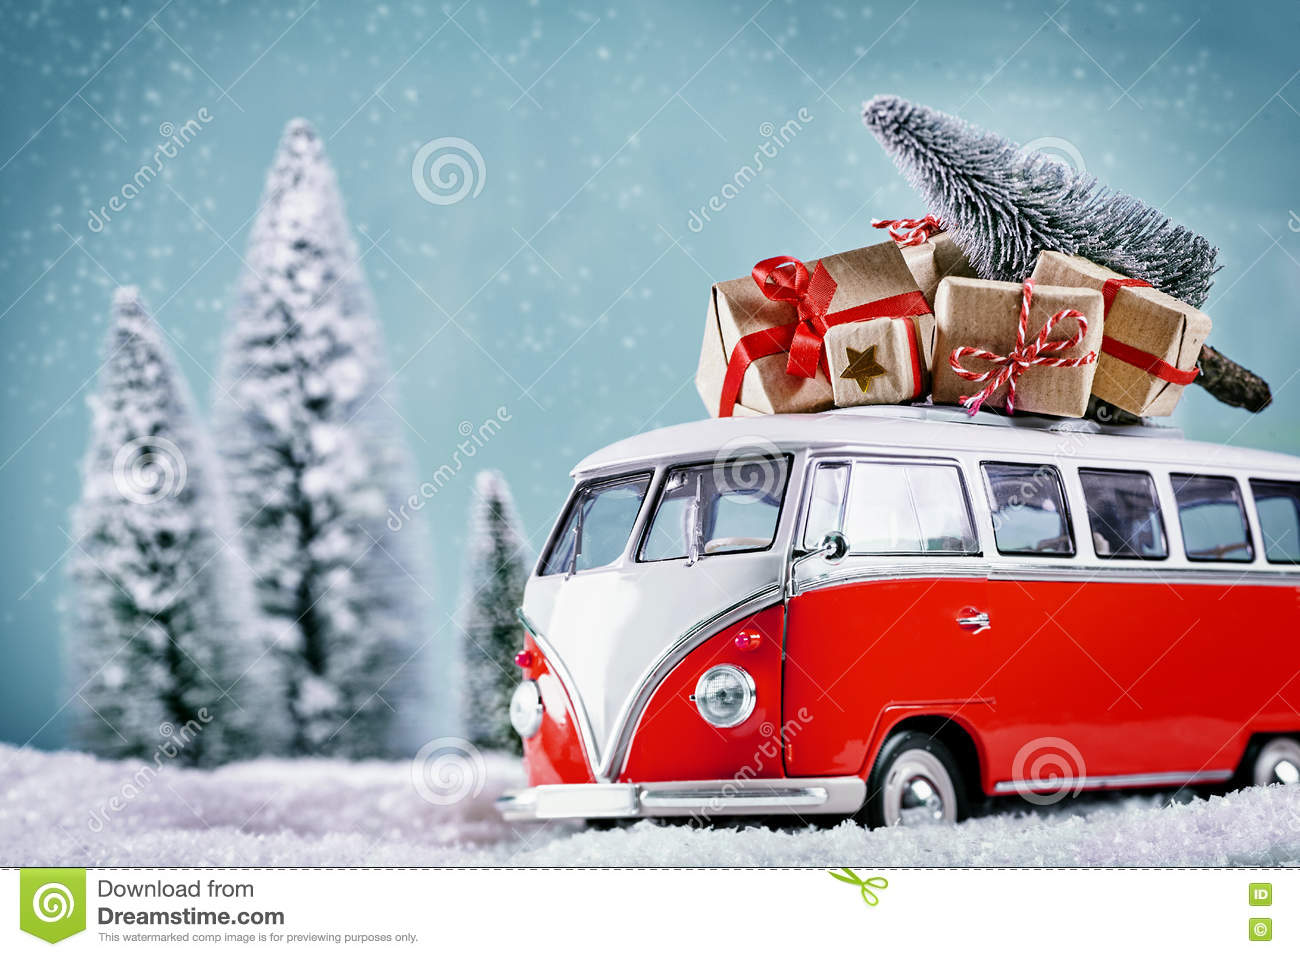 Christmas Bus With Xmas Gifts Stock Illustration - Illustration of modern, holiday: 80192373